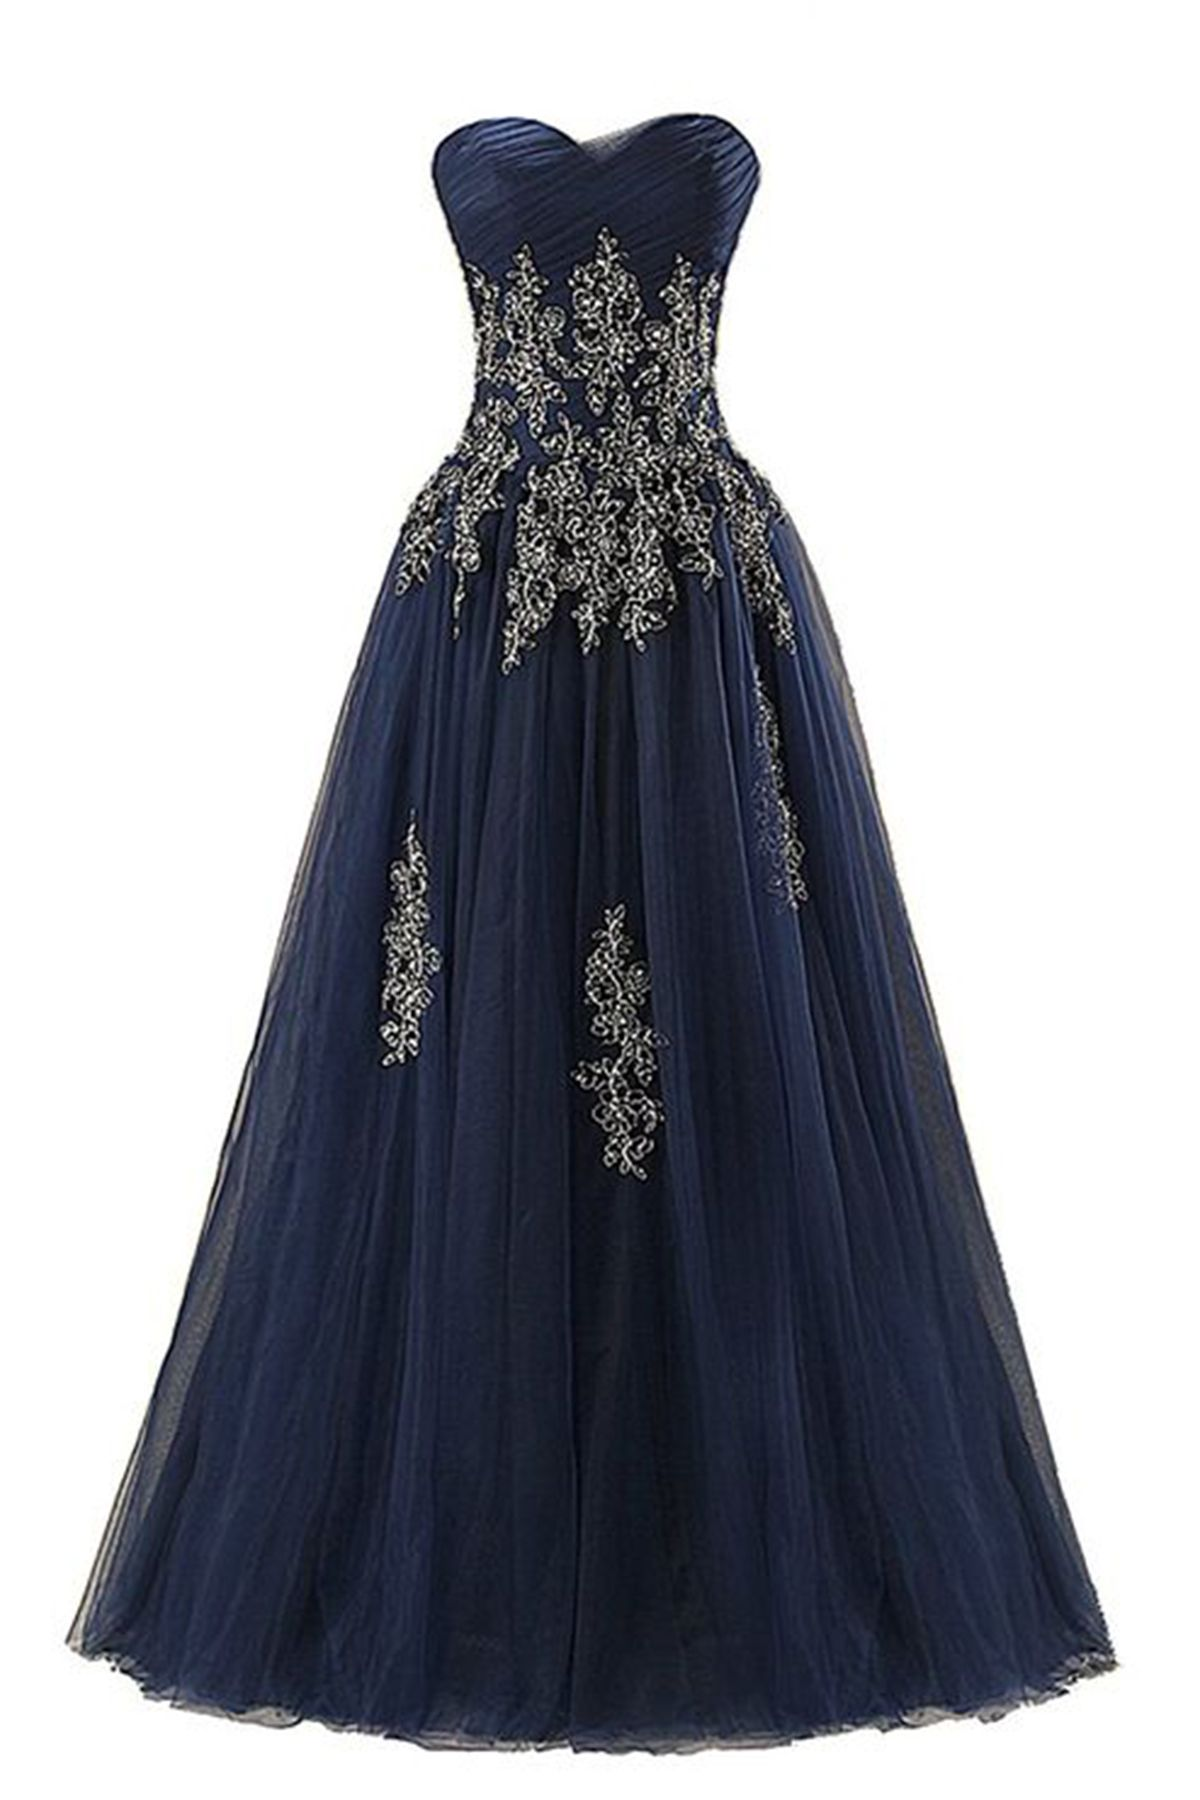 New navy blue tulle long sleeveless prom dresses prom dresses